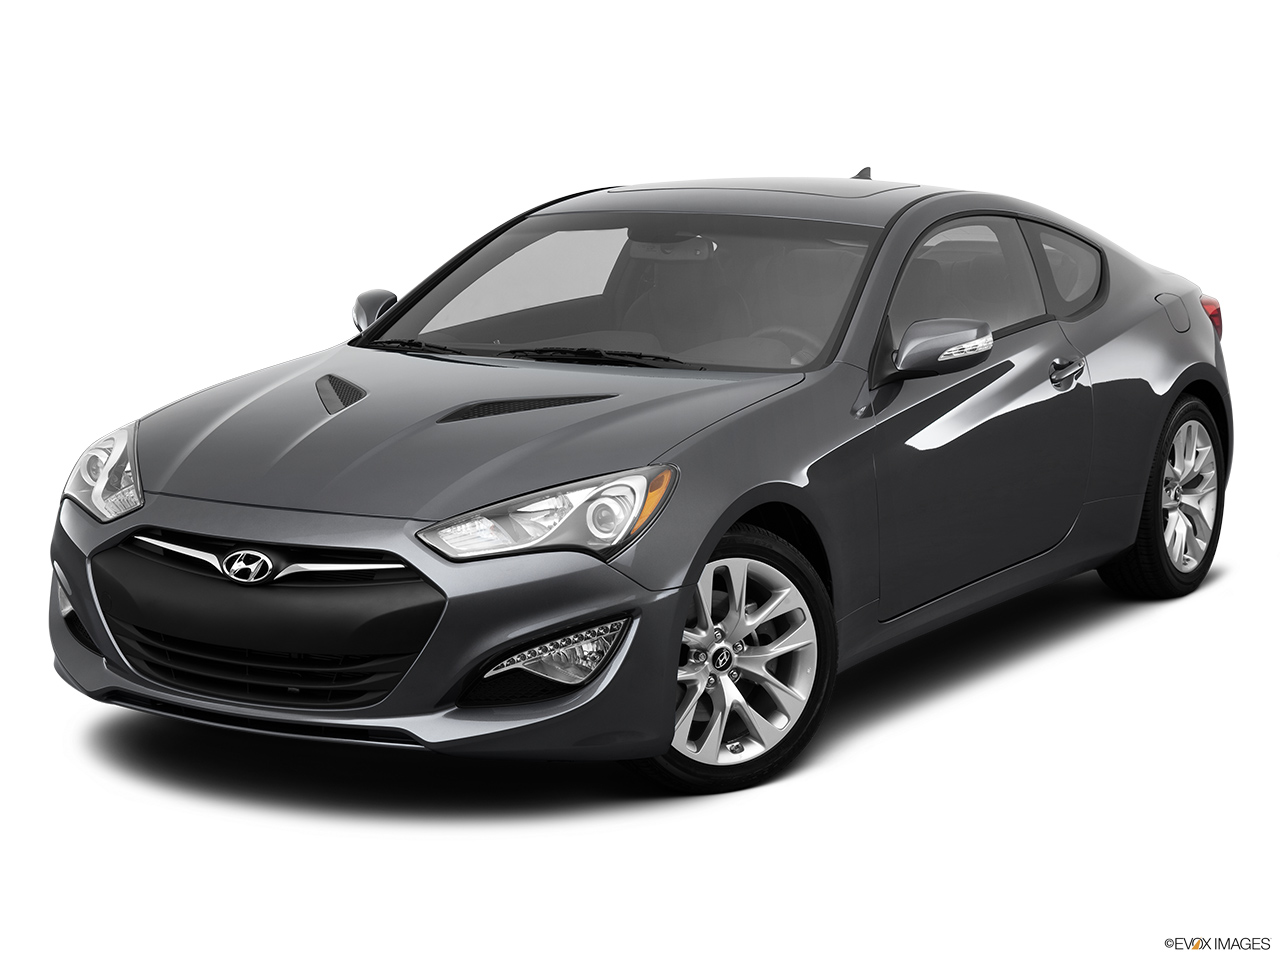 2013 hyundai genesis coupe 2dr v6 3 8l manual r spec front angle view